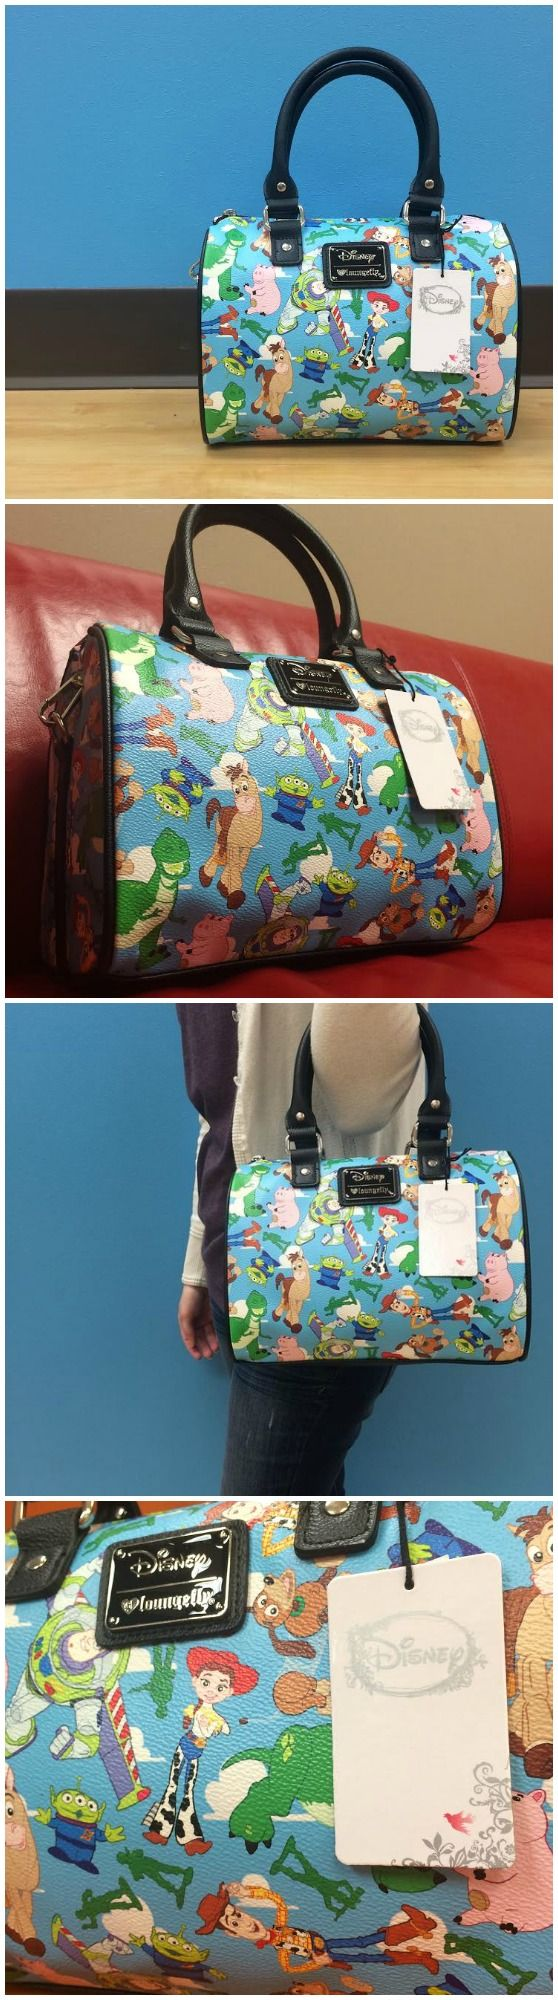 New! An exclusive Toy Story Loungefly bag - only at Fun.com! Woody, Buzz, Jesse, Rex, Hamm, and more, all on a cute, blue purse!